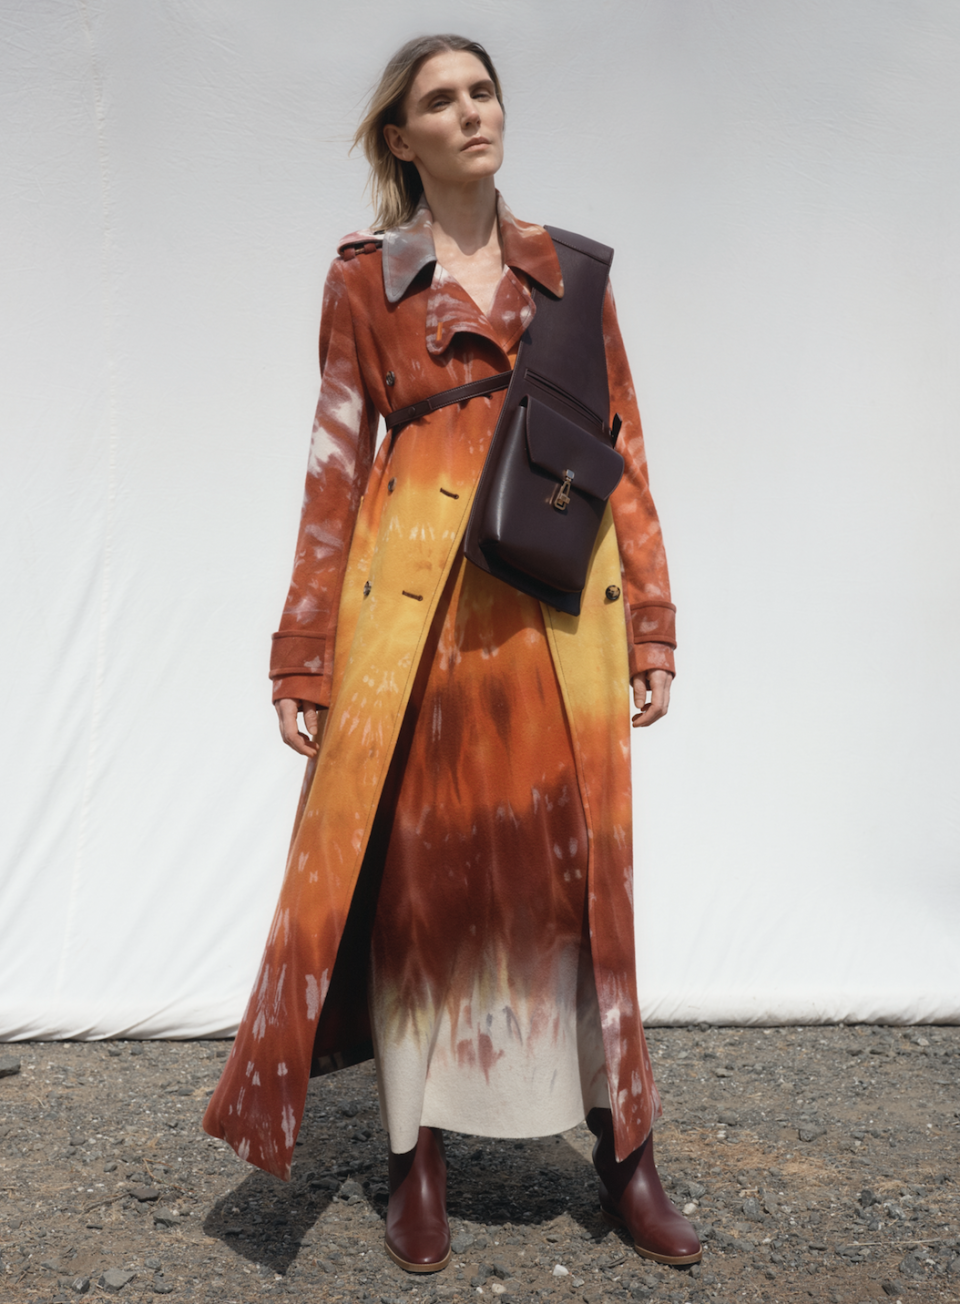 """<p>An important tidbit to note about Gabriela Hearst's resort 2021 collection is that 60 percent of this collection was created from repurposed or recycled materials. The fashion house used leftover suiting fabric to create new pieces, repurposed its cashmere to create long trenches and dresses, and """"hand crochet geodes neck detailing"""" were turned into swimwear—just to name a few.<br></p>"""